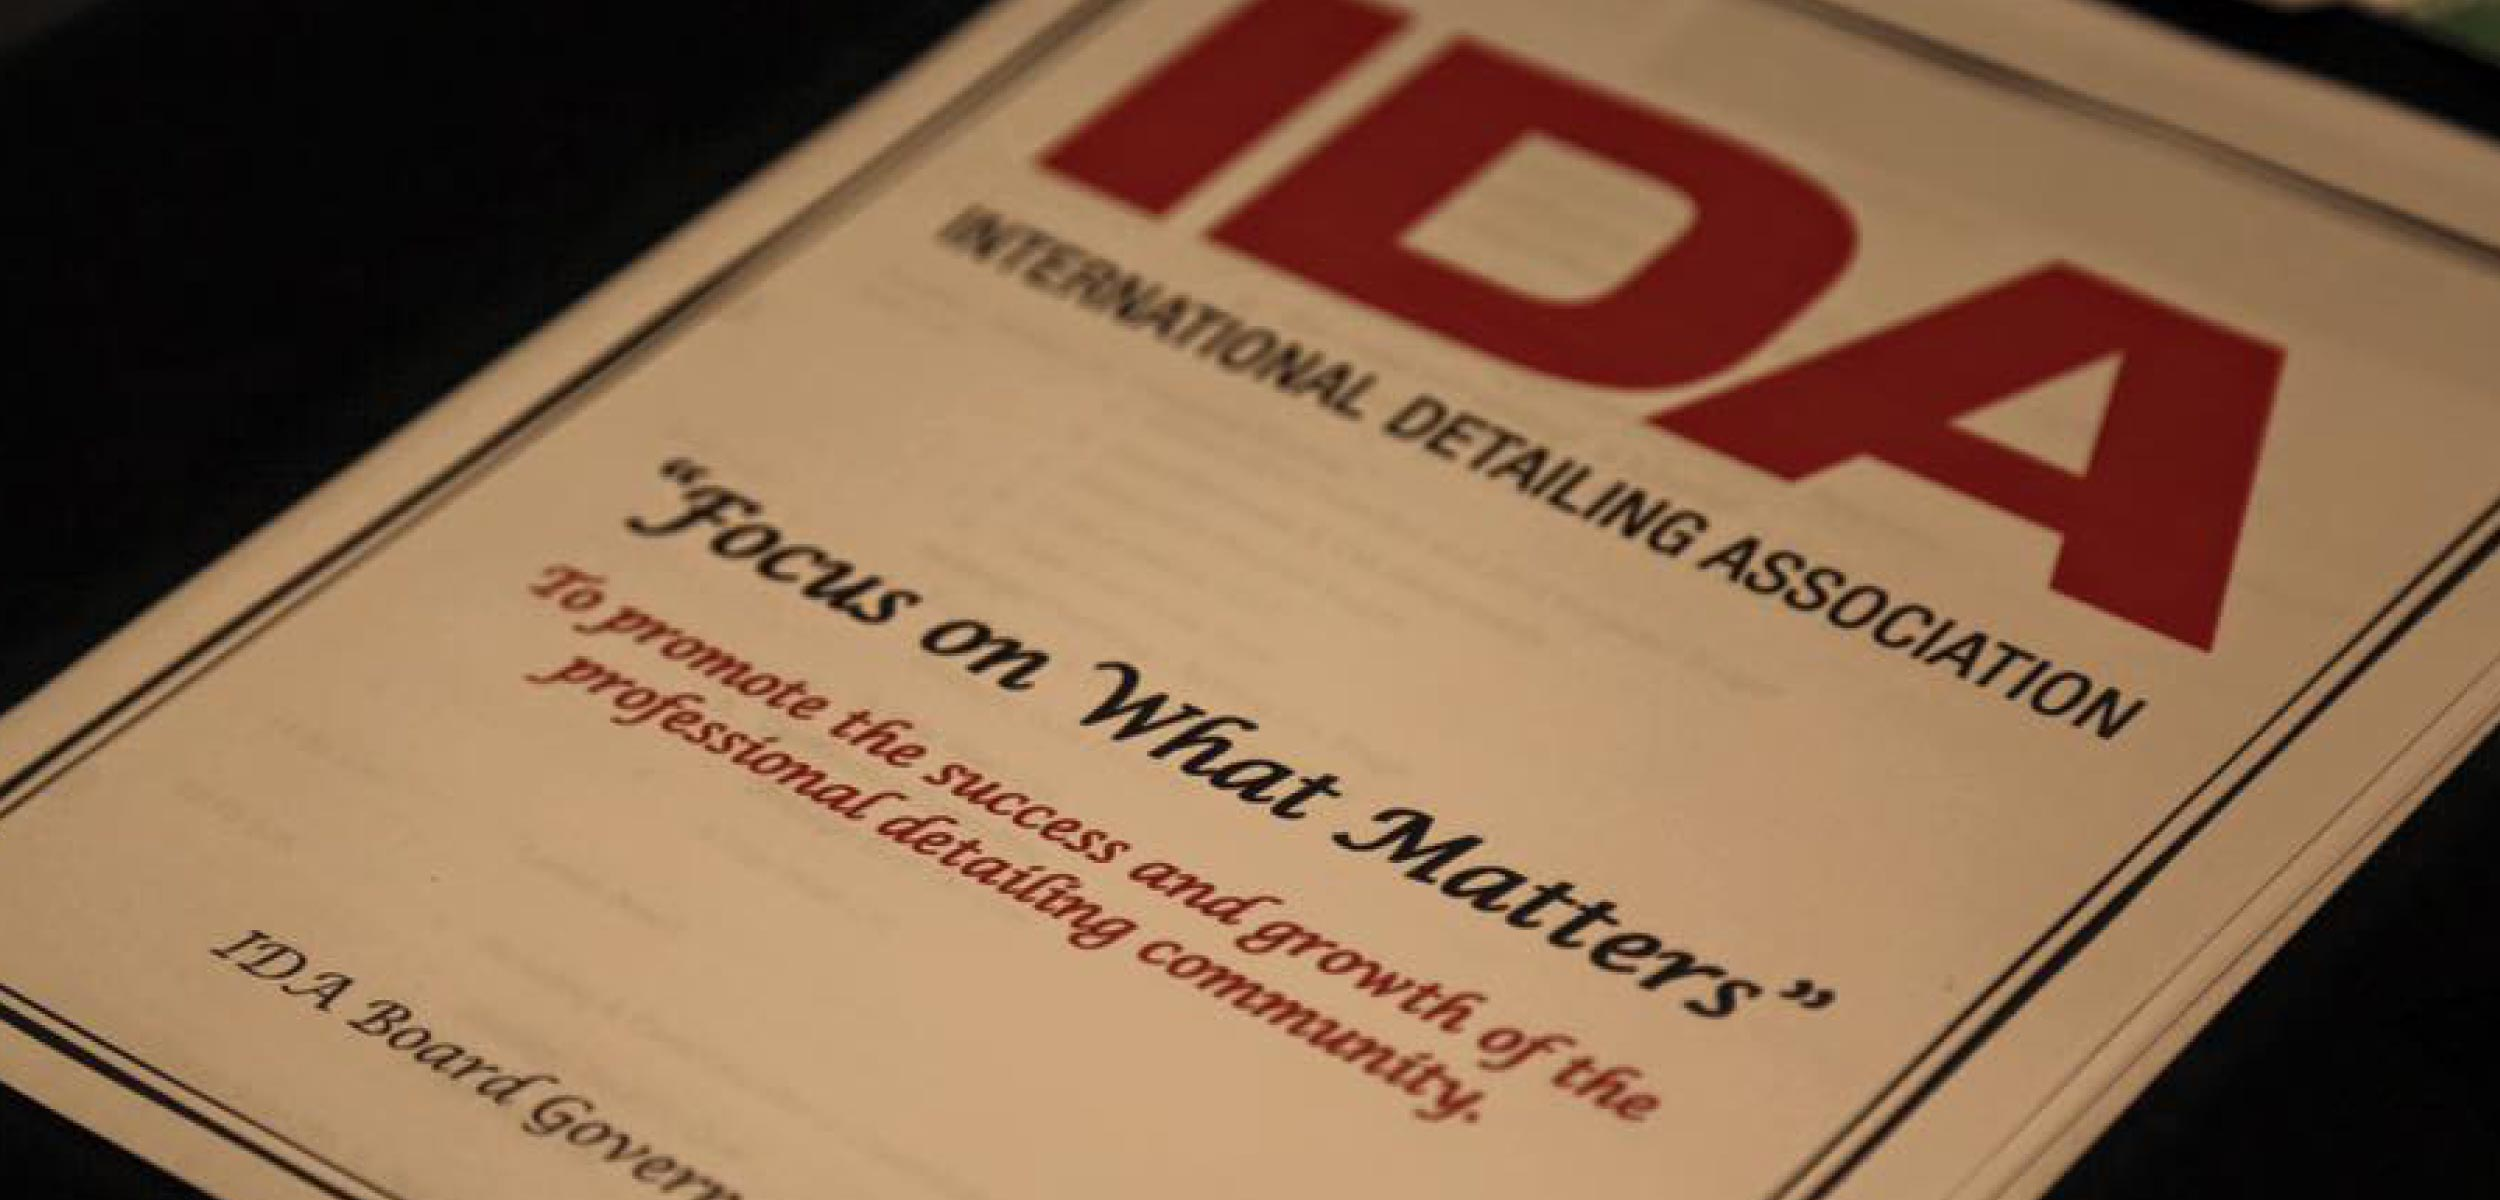 the-international-detailing-association-and-igl-coatings-as-proud-member